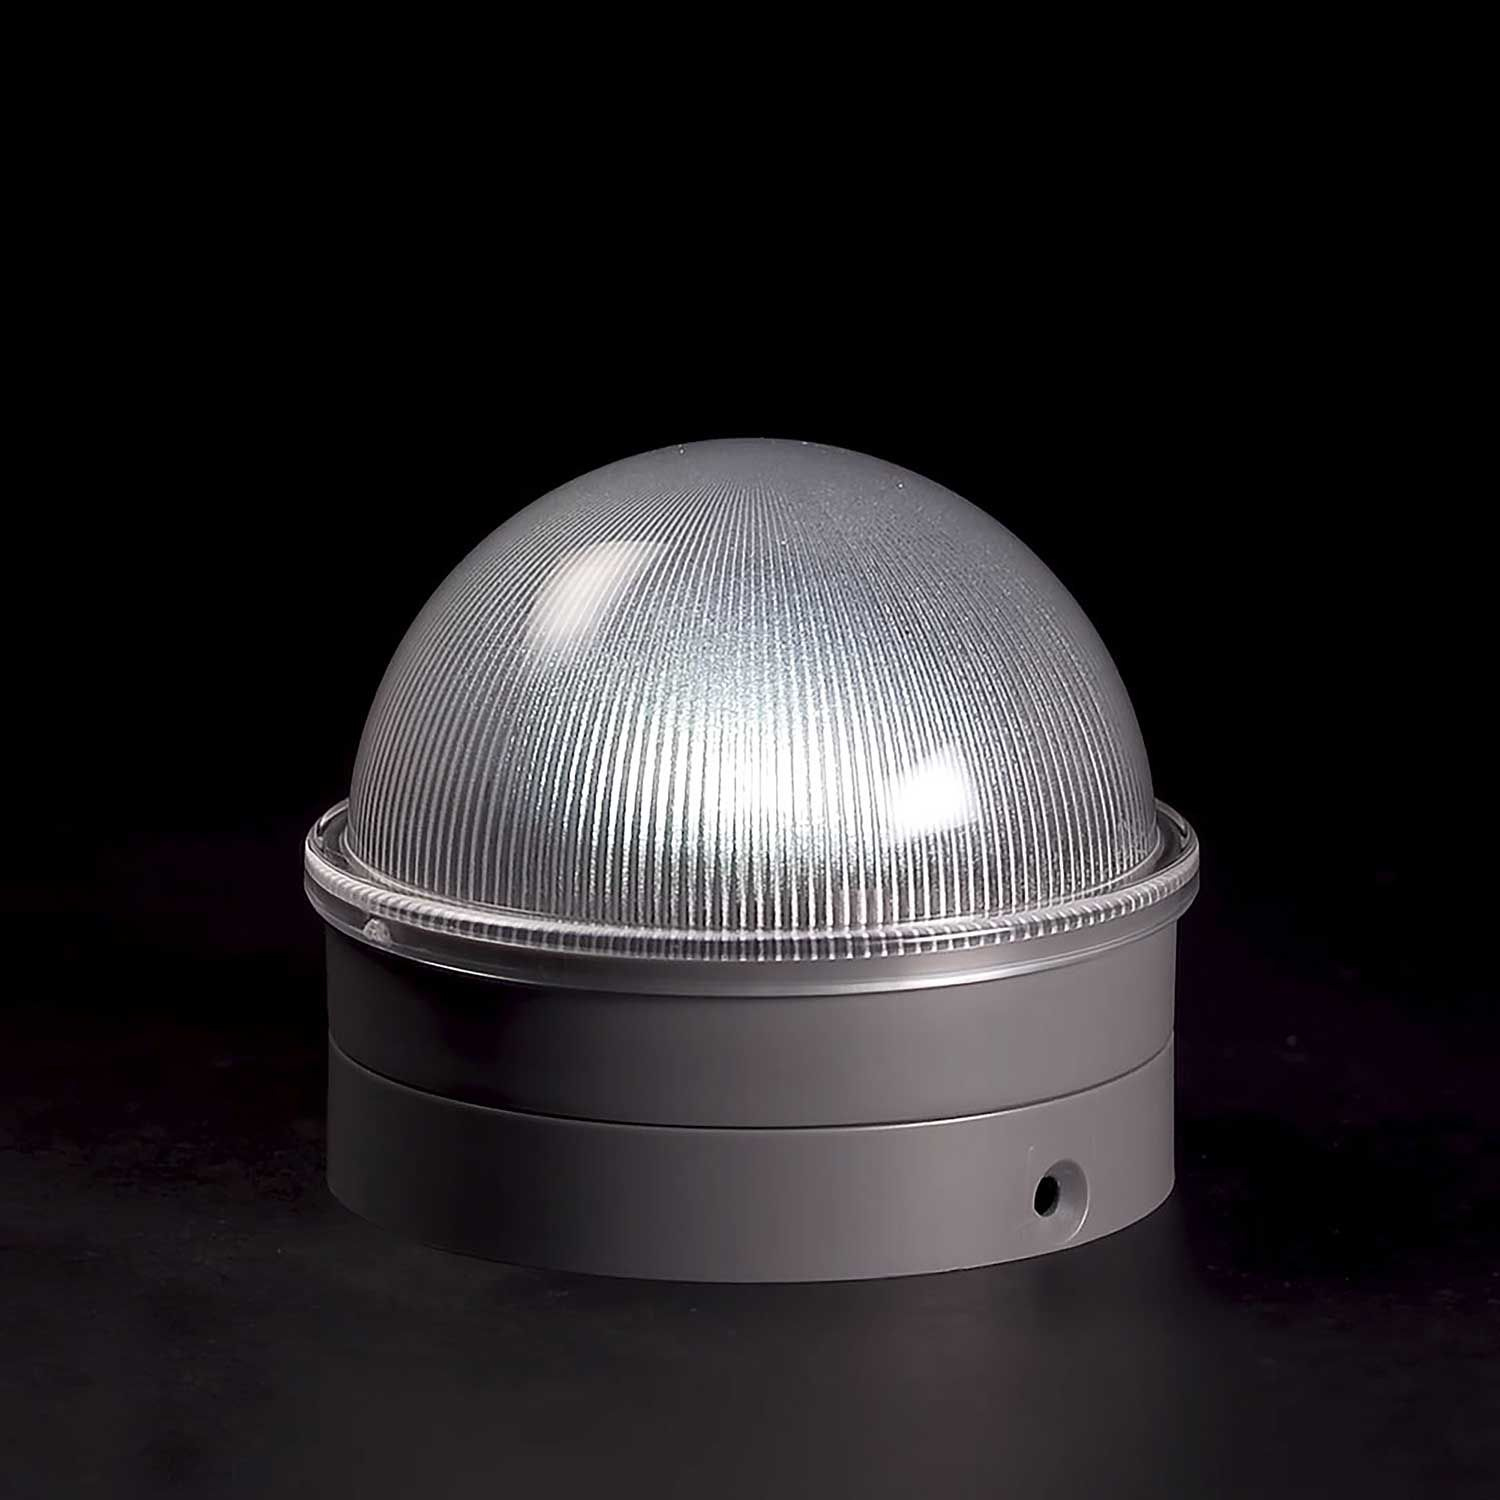 classy caps summit solar lighting post caps for round chain link fence posts silver